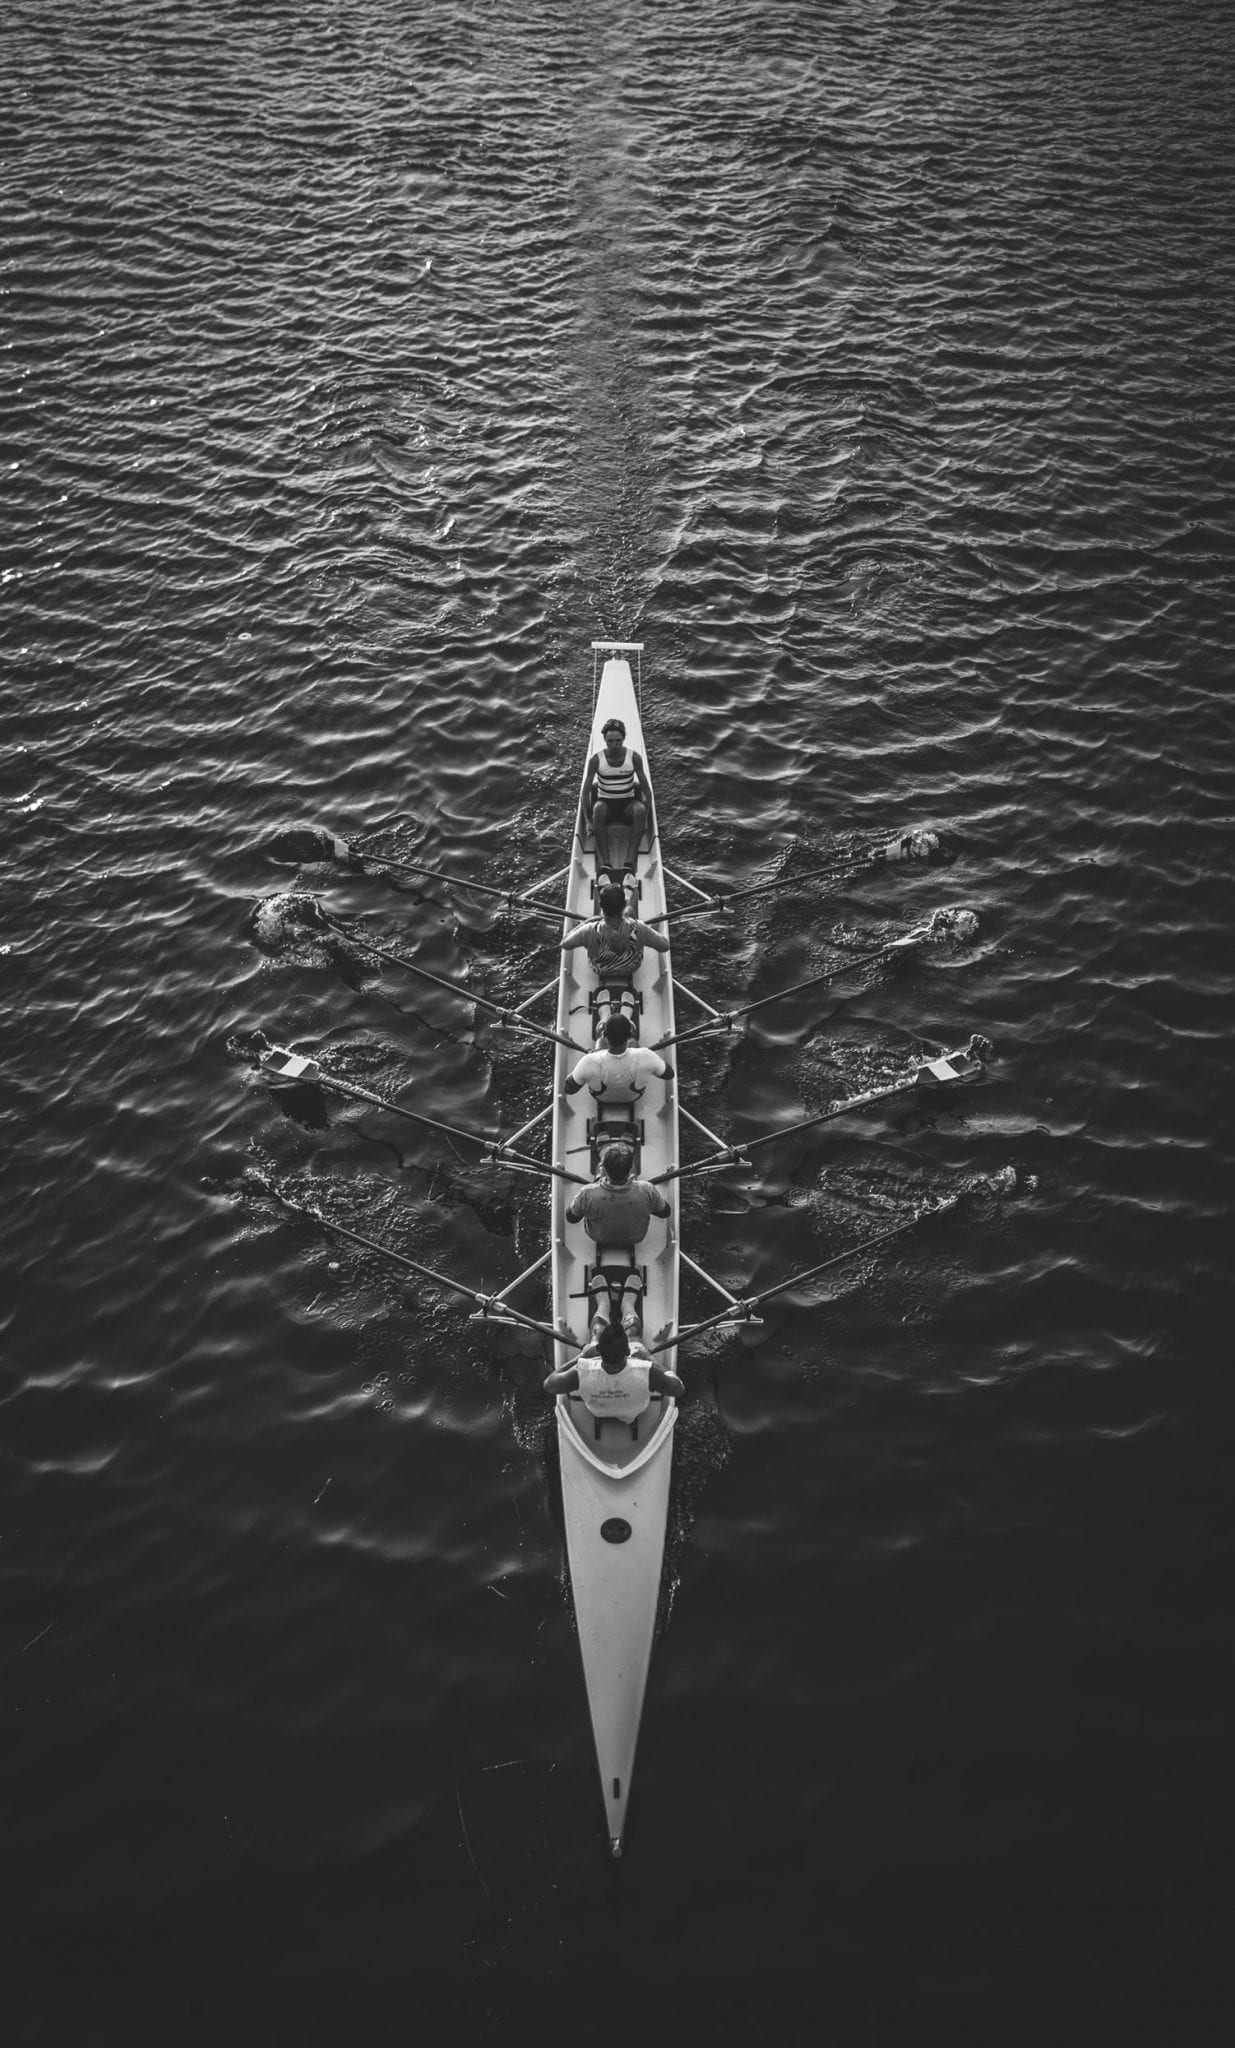 Top view of a rowing team in a rowboat in the middle of the sea